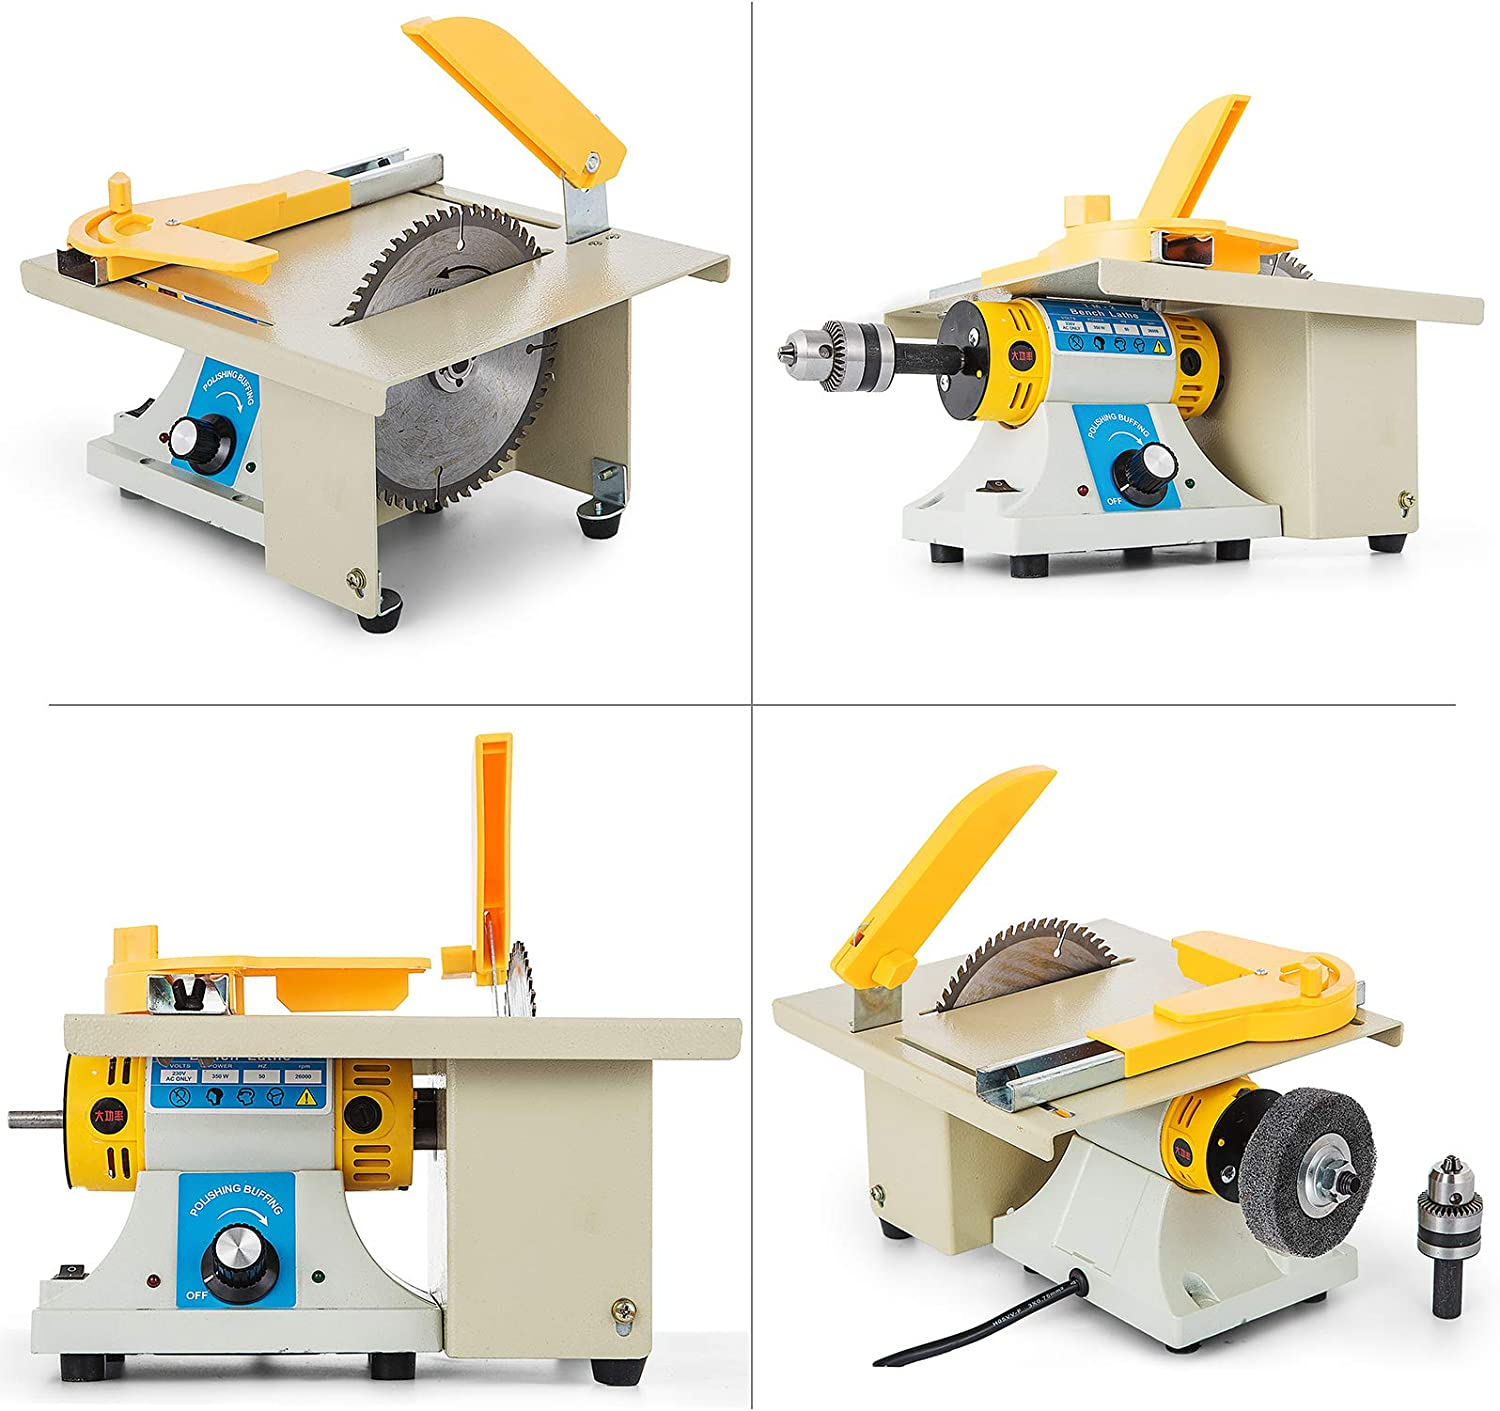 Mophorn carving machine Table Saws product image 4